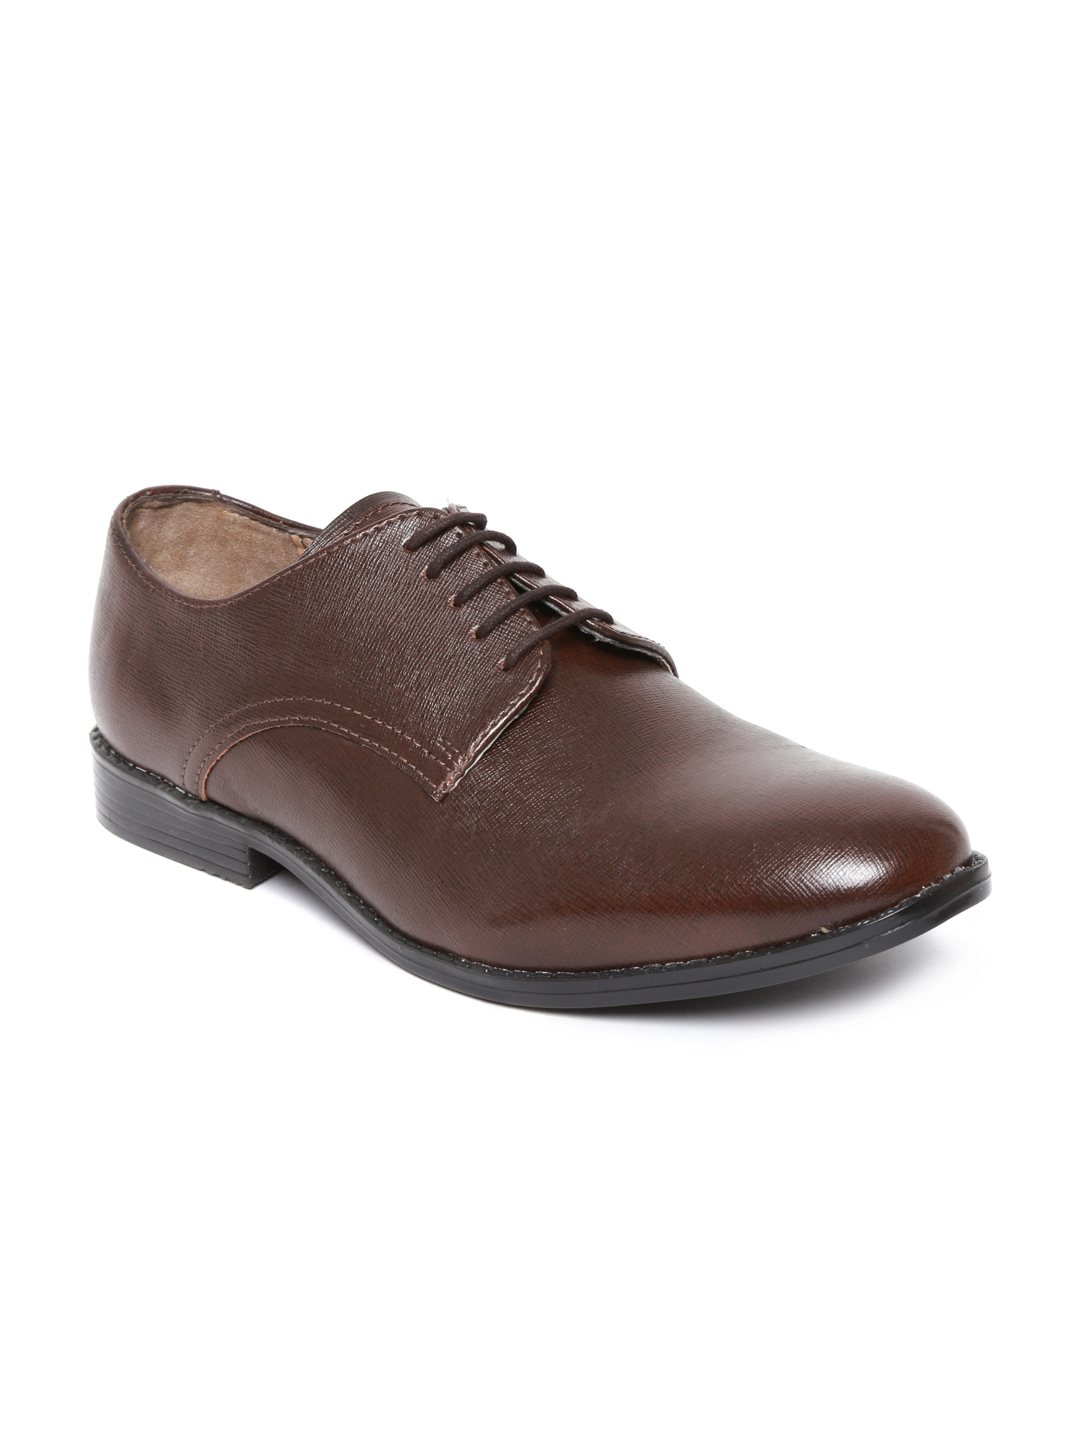 myntra knotty derby brown formal shoes 553378 buy